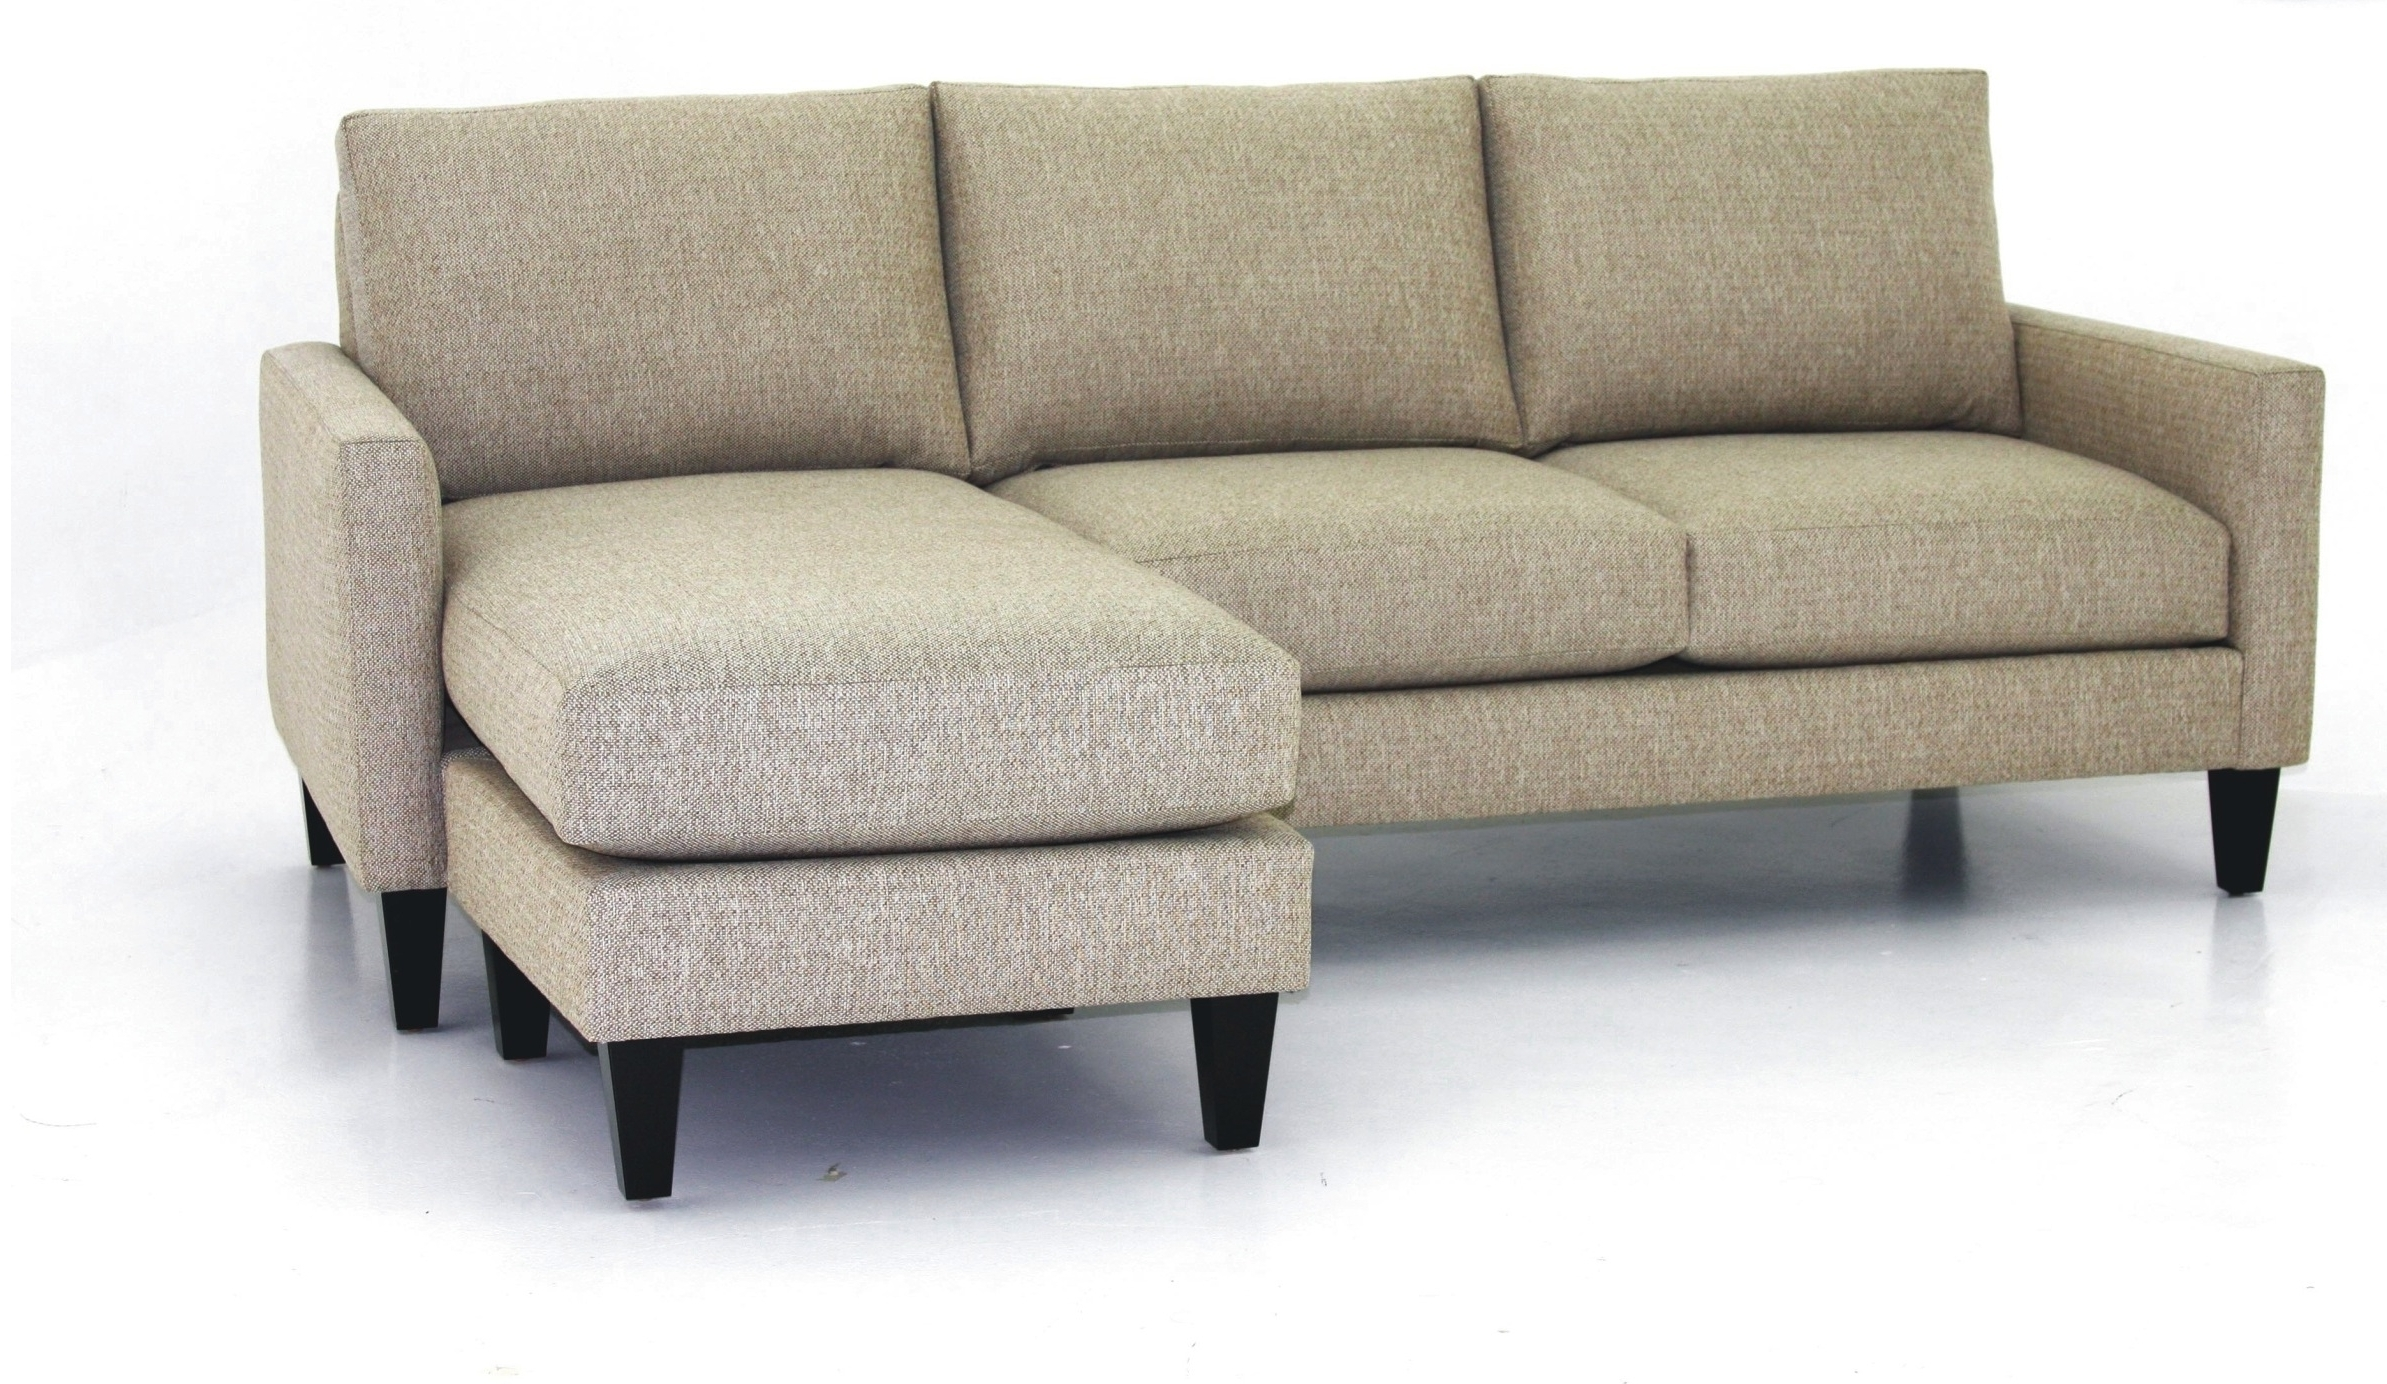 Popular Designers Furniture Glendale Christian Convertible Sofa Chaise Regarding Convertible Chaises (View 9 of 15)